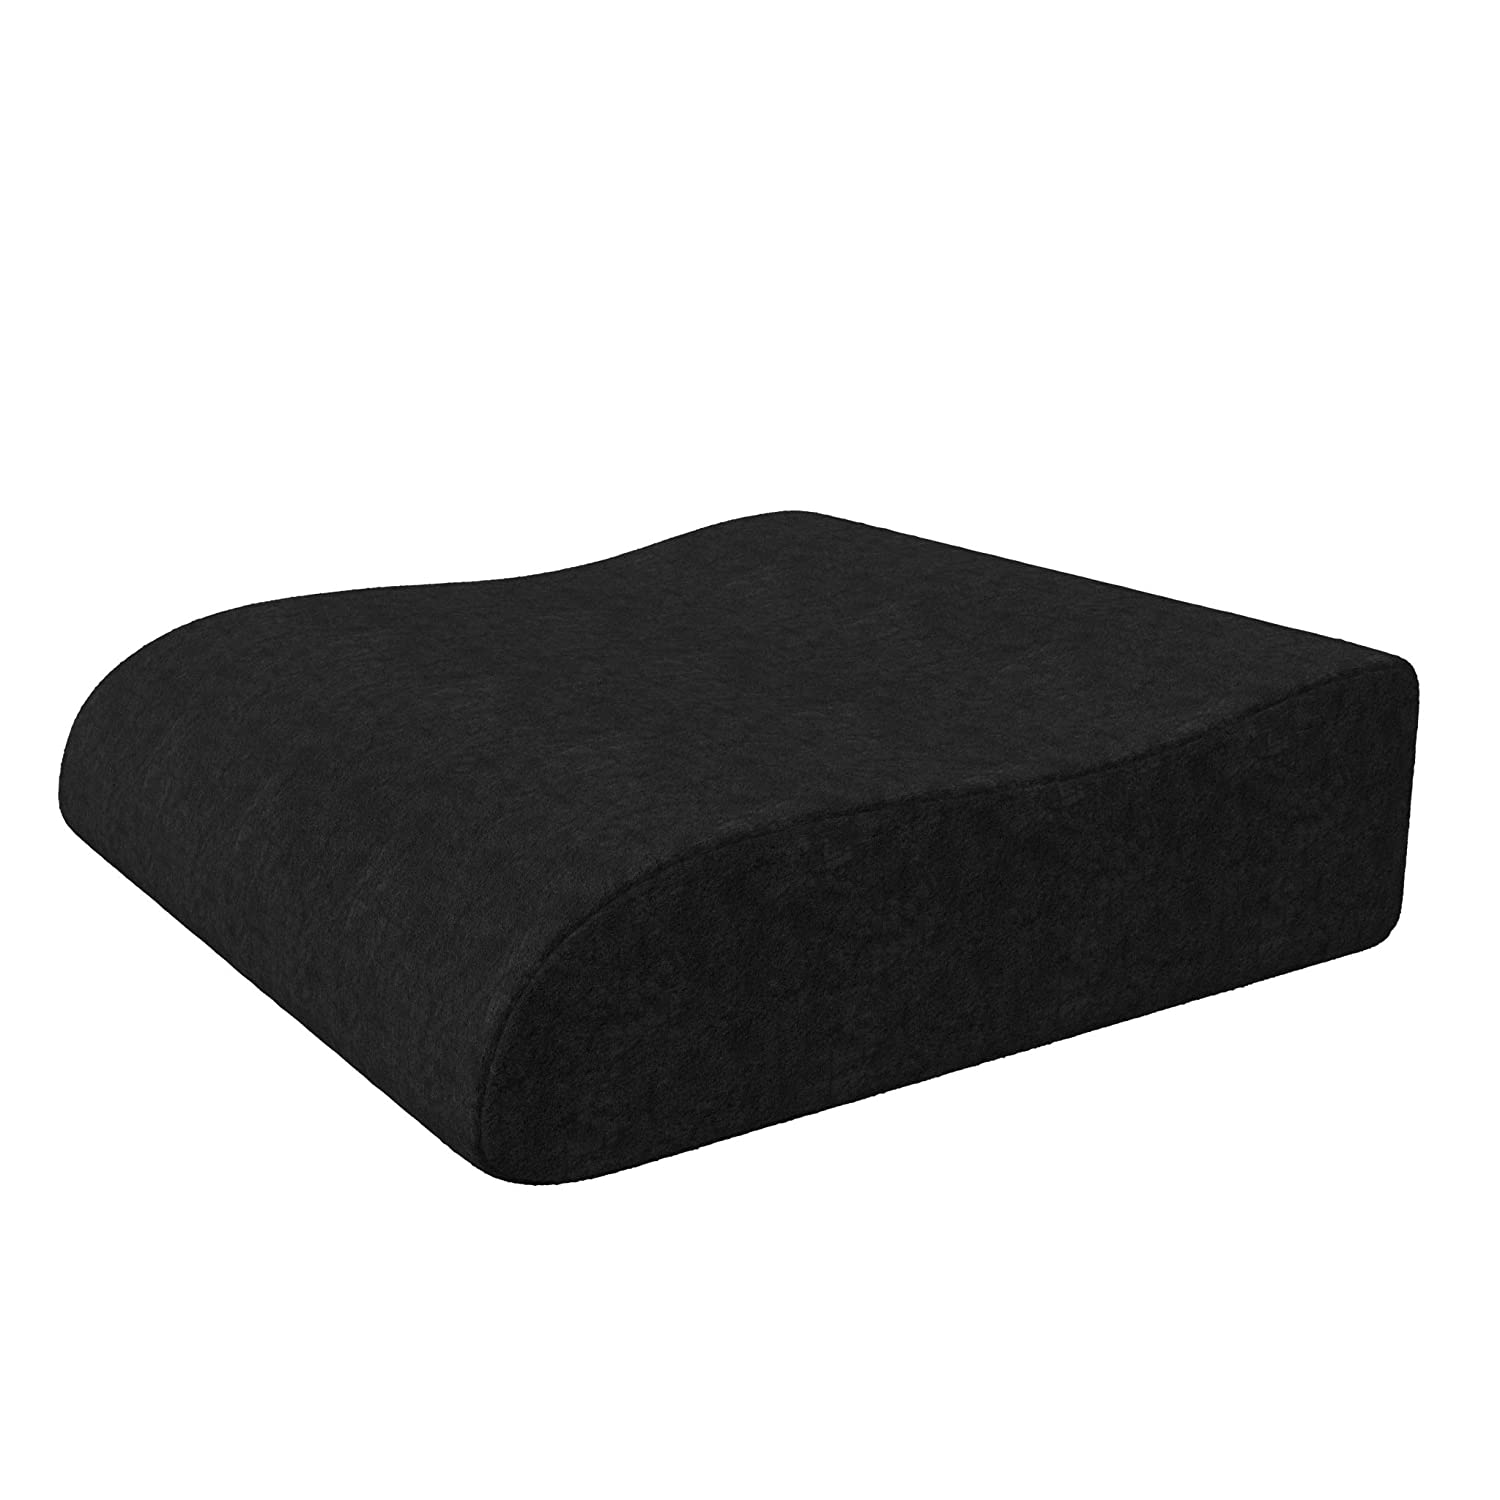 bonmedico Raiser Seat Cushion, Innovative Foam Chair Cushion, Ergonomic Wedge Cushion with High Seating Comfort, Booster Seat to Support Standing Up from The Armchair